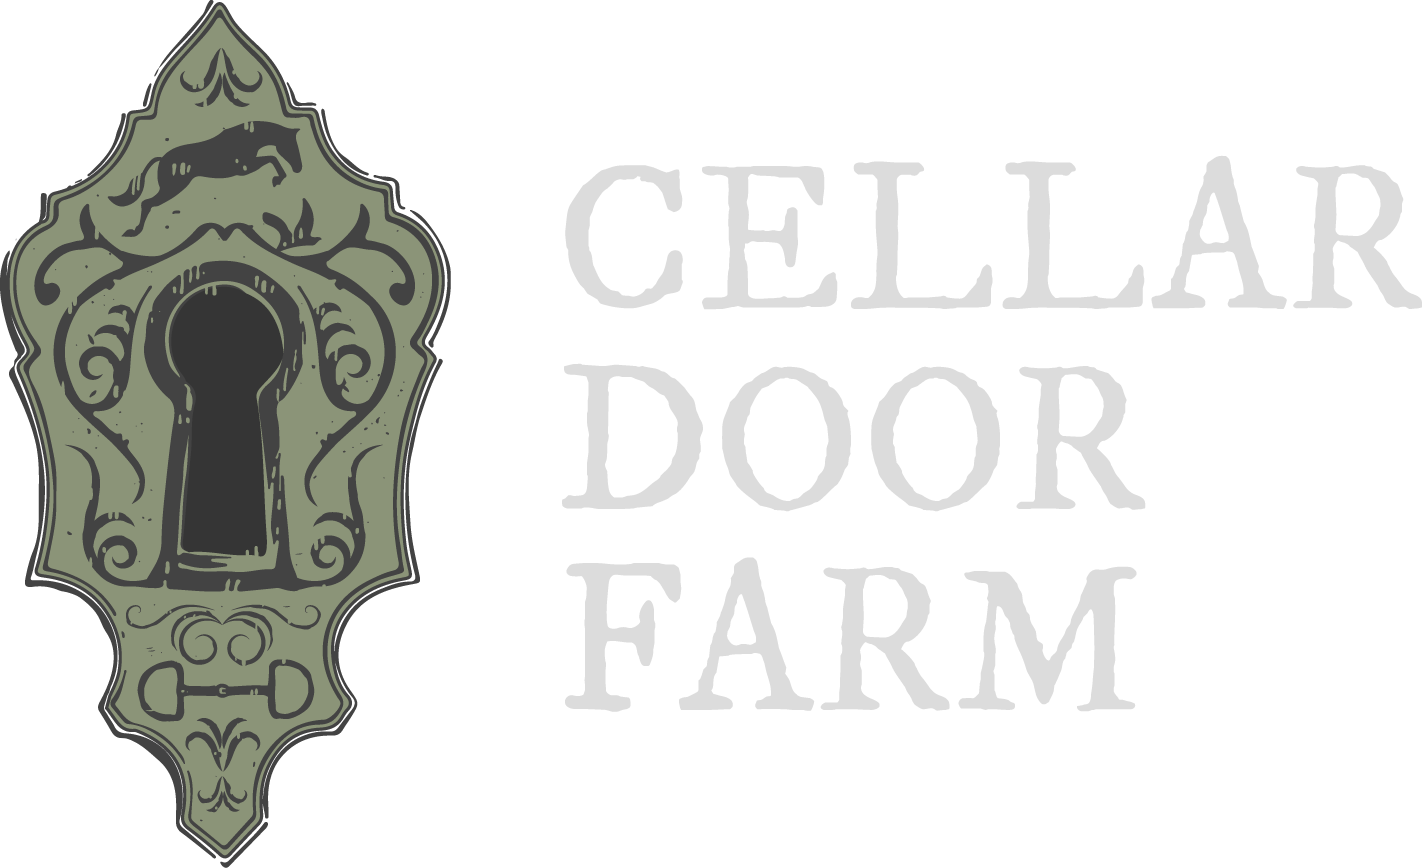 Cellar Door Farm